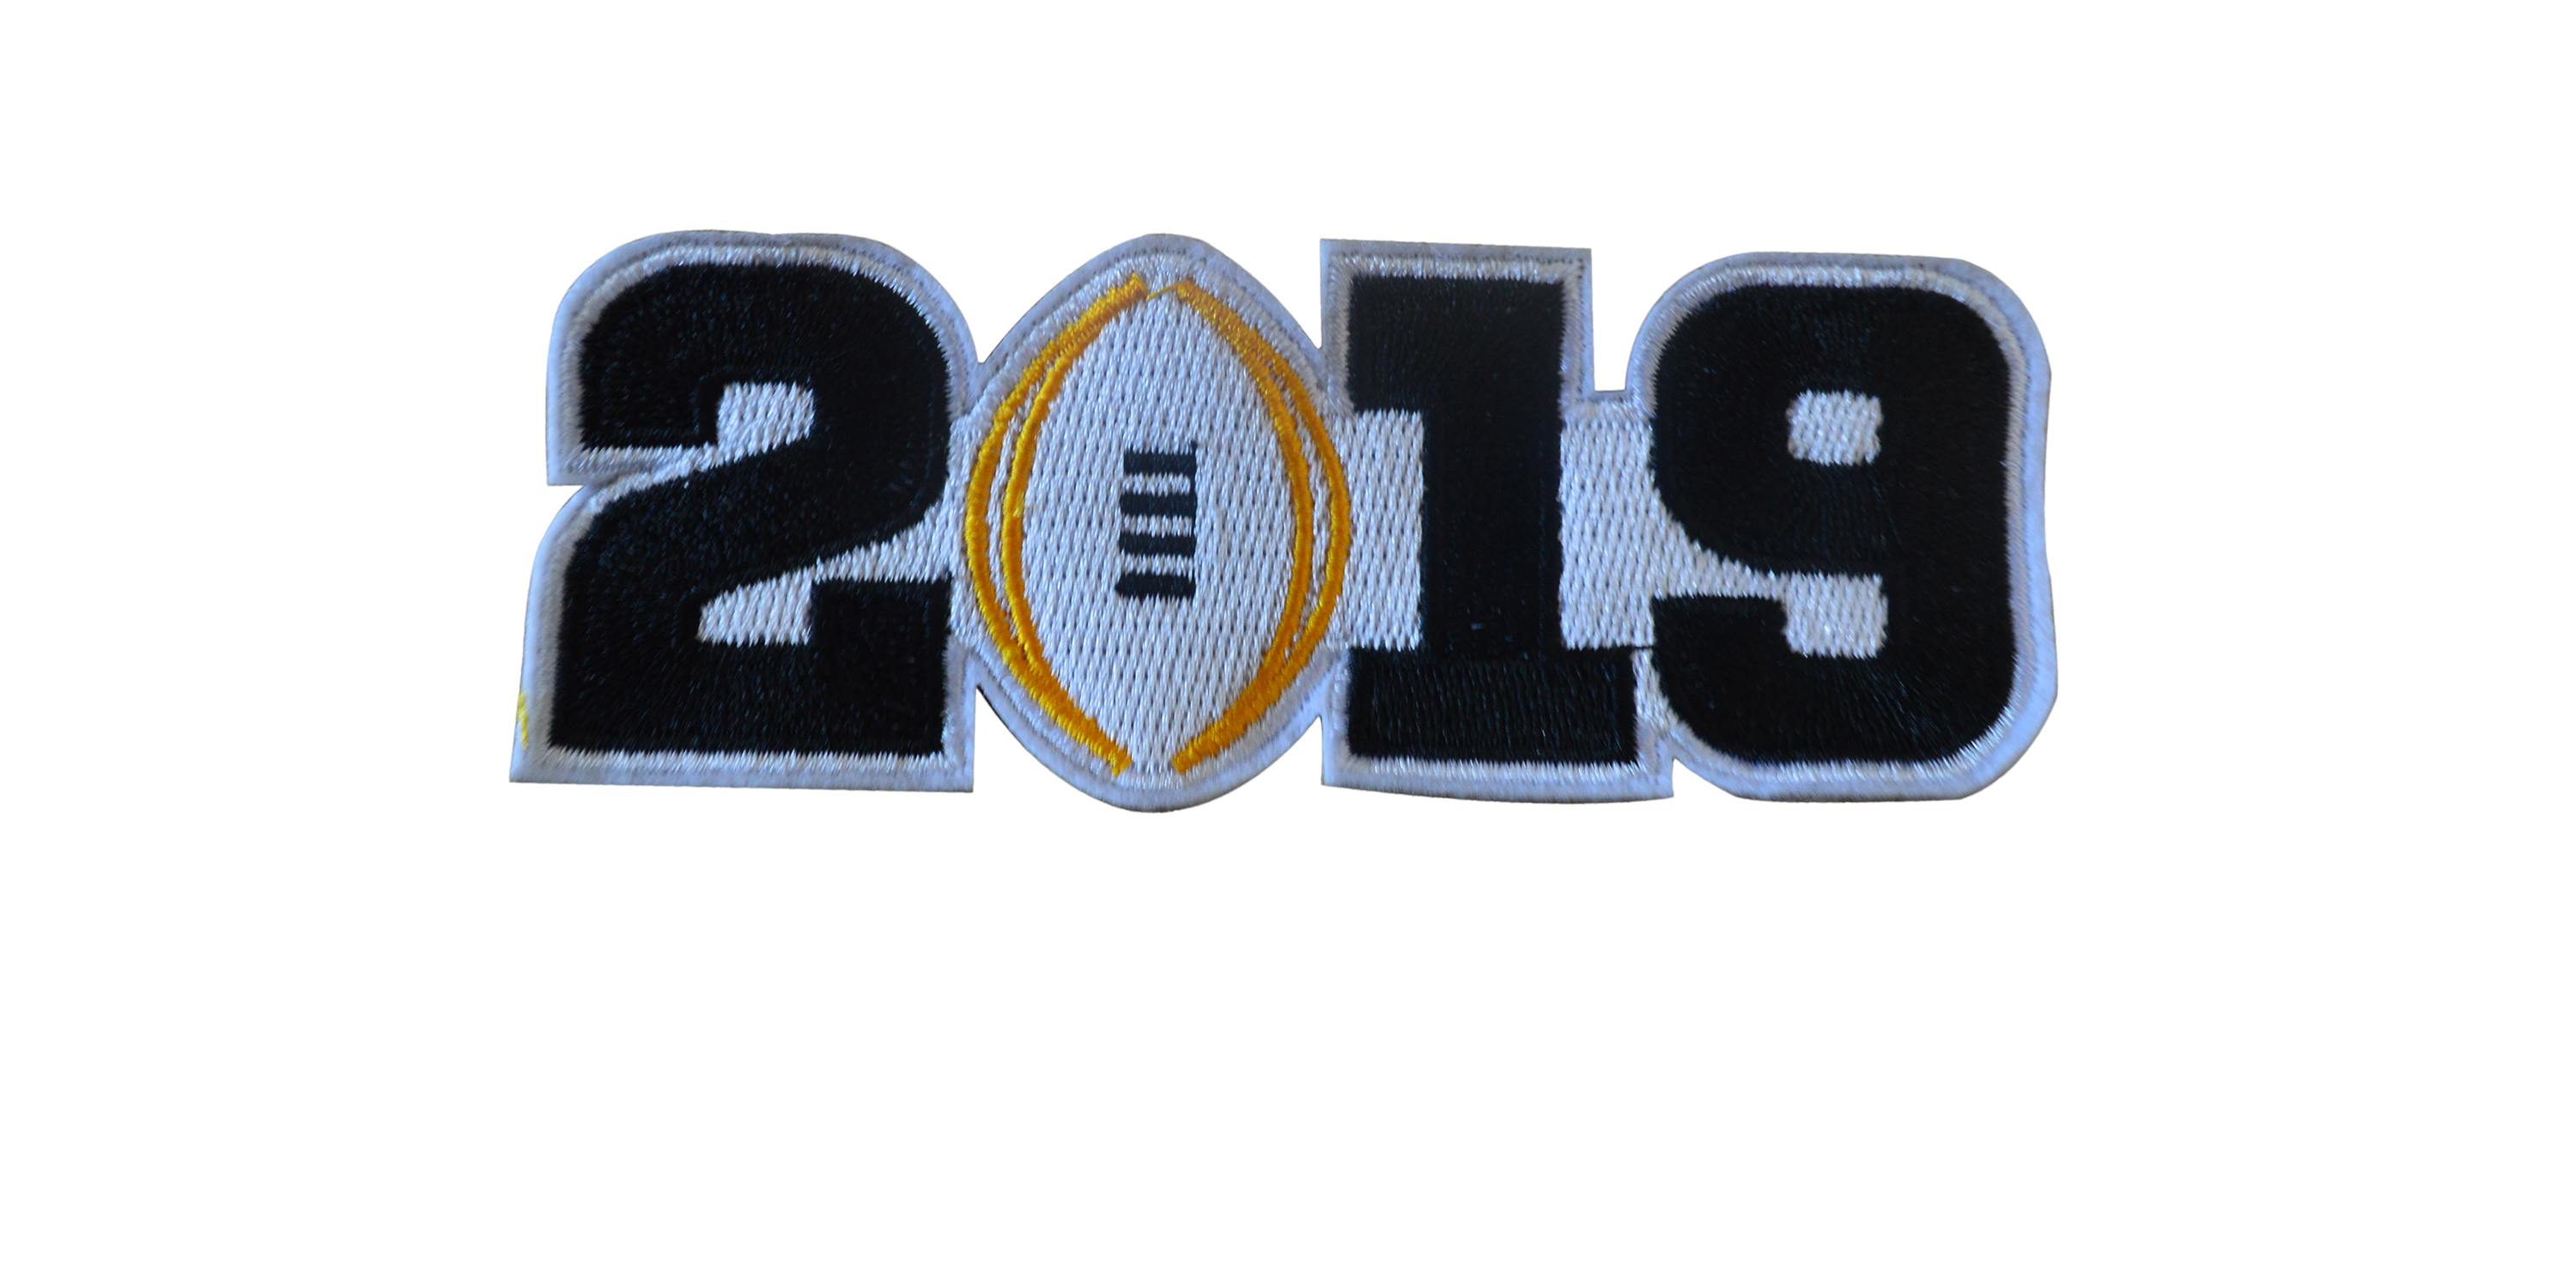 College Football Black 2019 Finals Patch